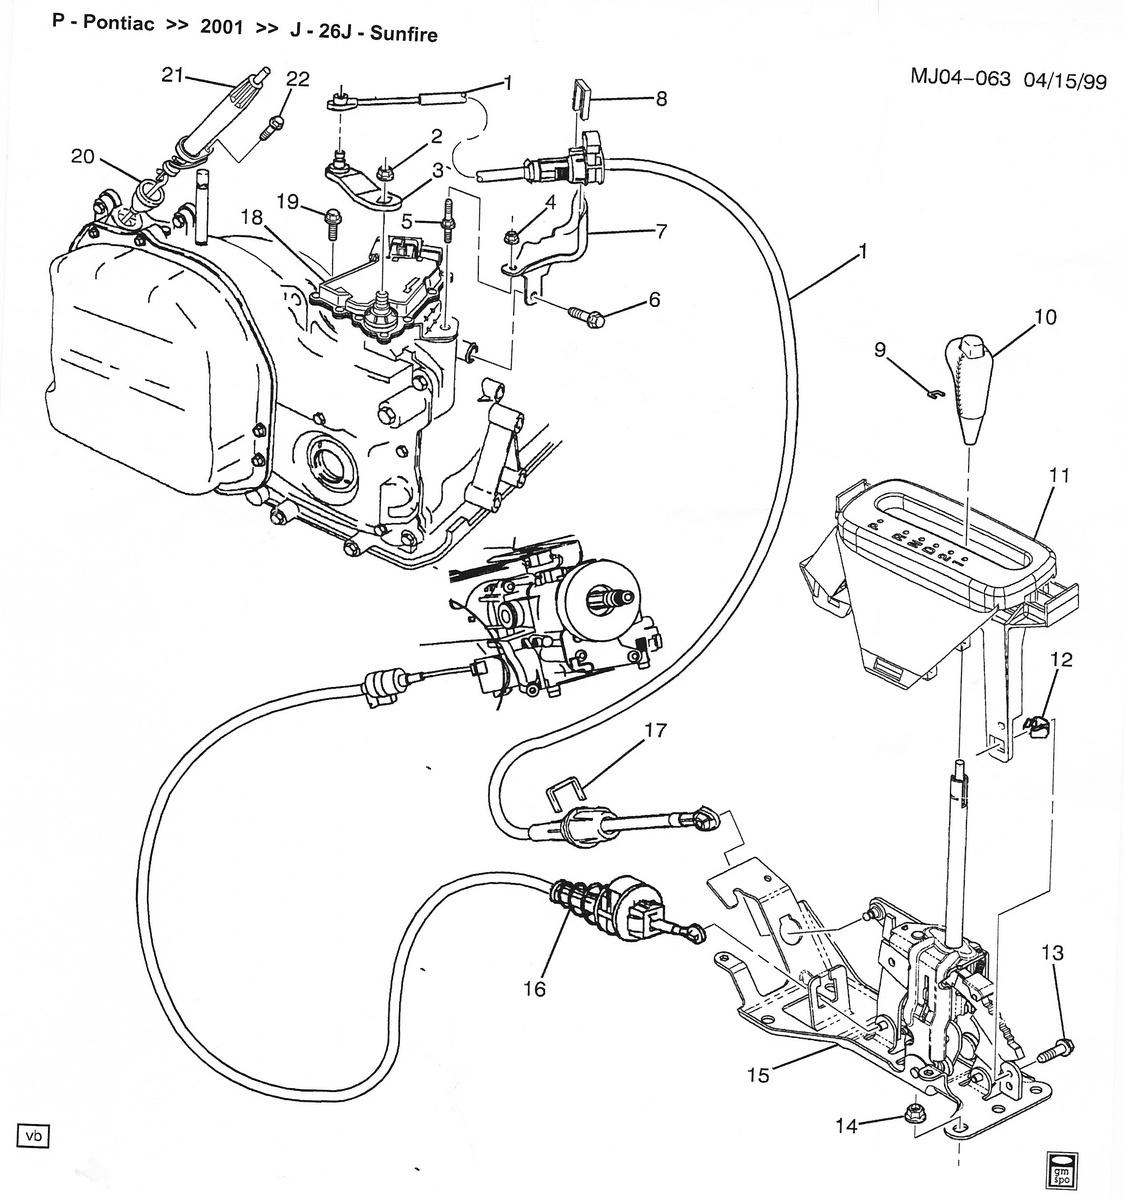 2006 Ford Explorer Automatic Shifter Wiring Diagram on 2002 Mitsubishi Eclipse Wire Diagram